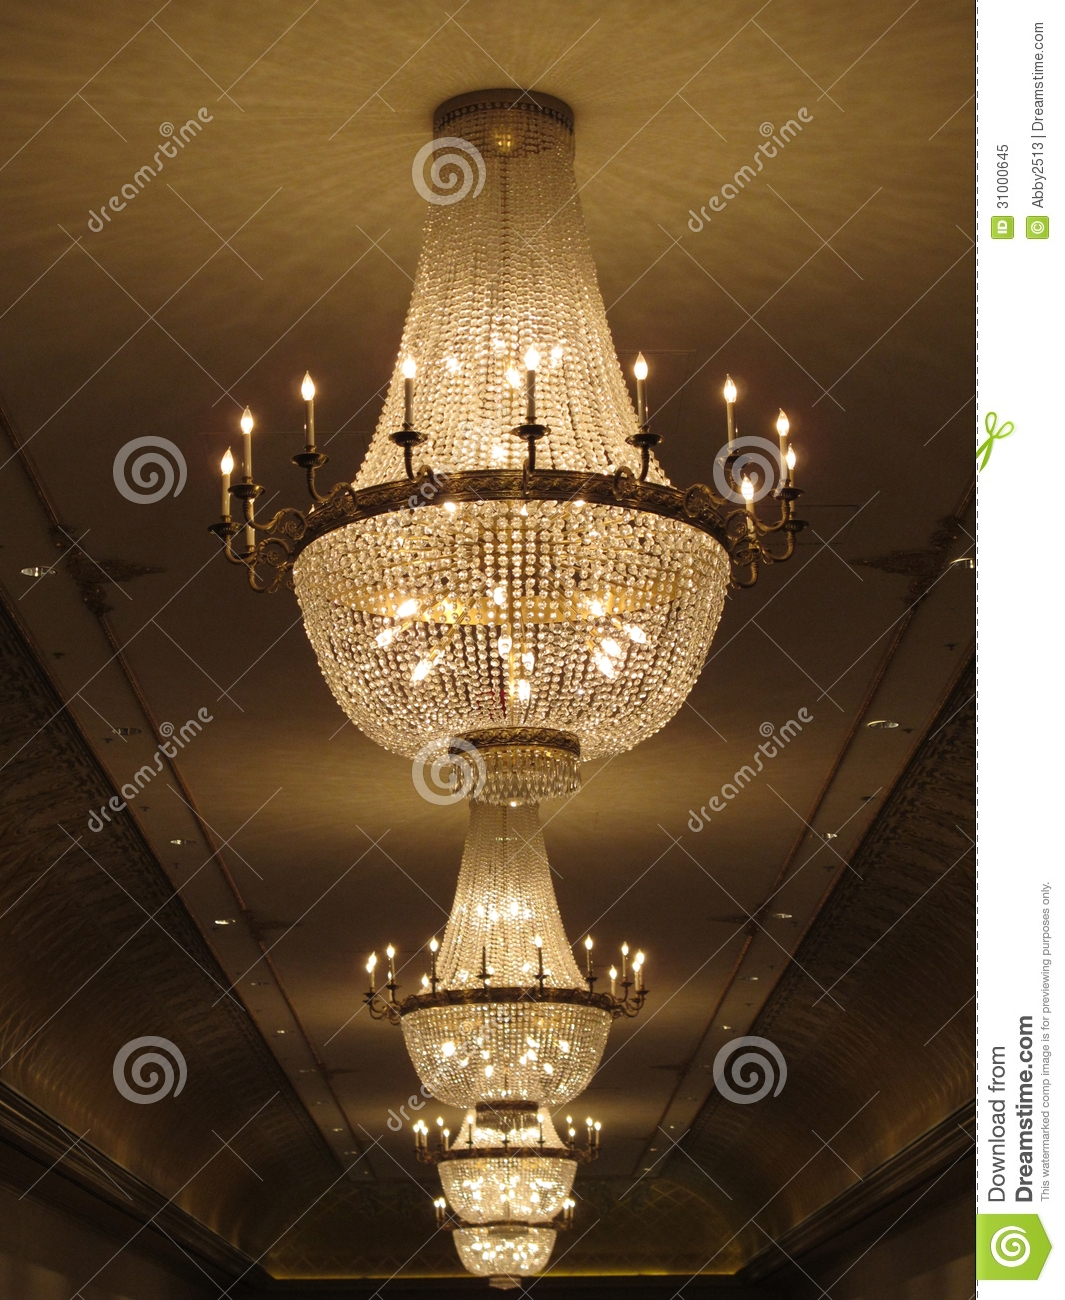 Gorgeous Crystal Chandelier Royalty Free Stock Photo Image 31000645 Throughout Ballroom Chandeliers (#6 of 12)